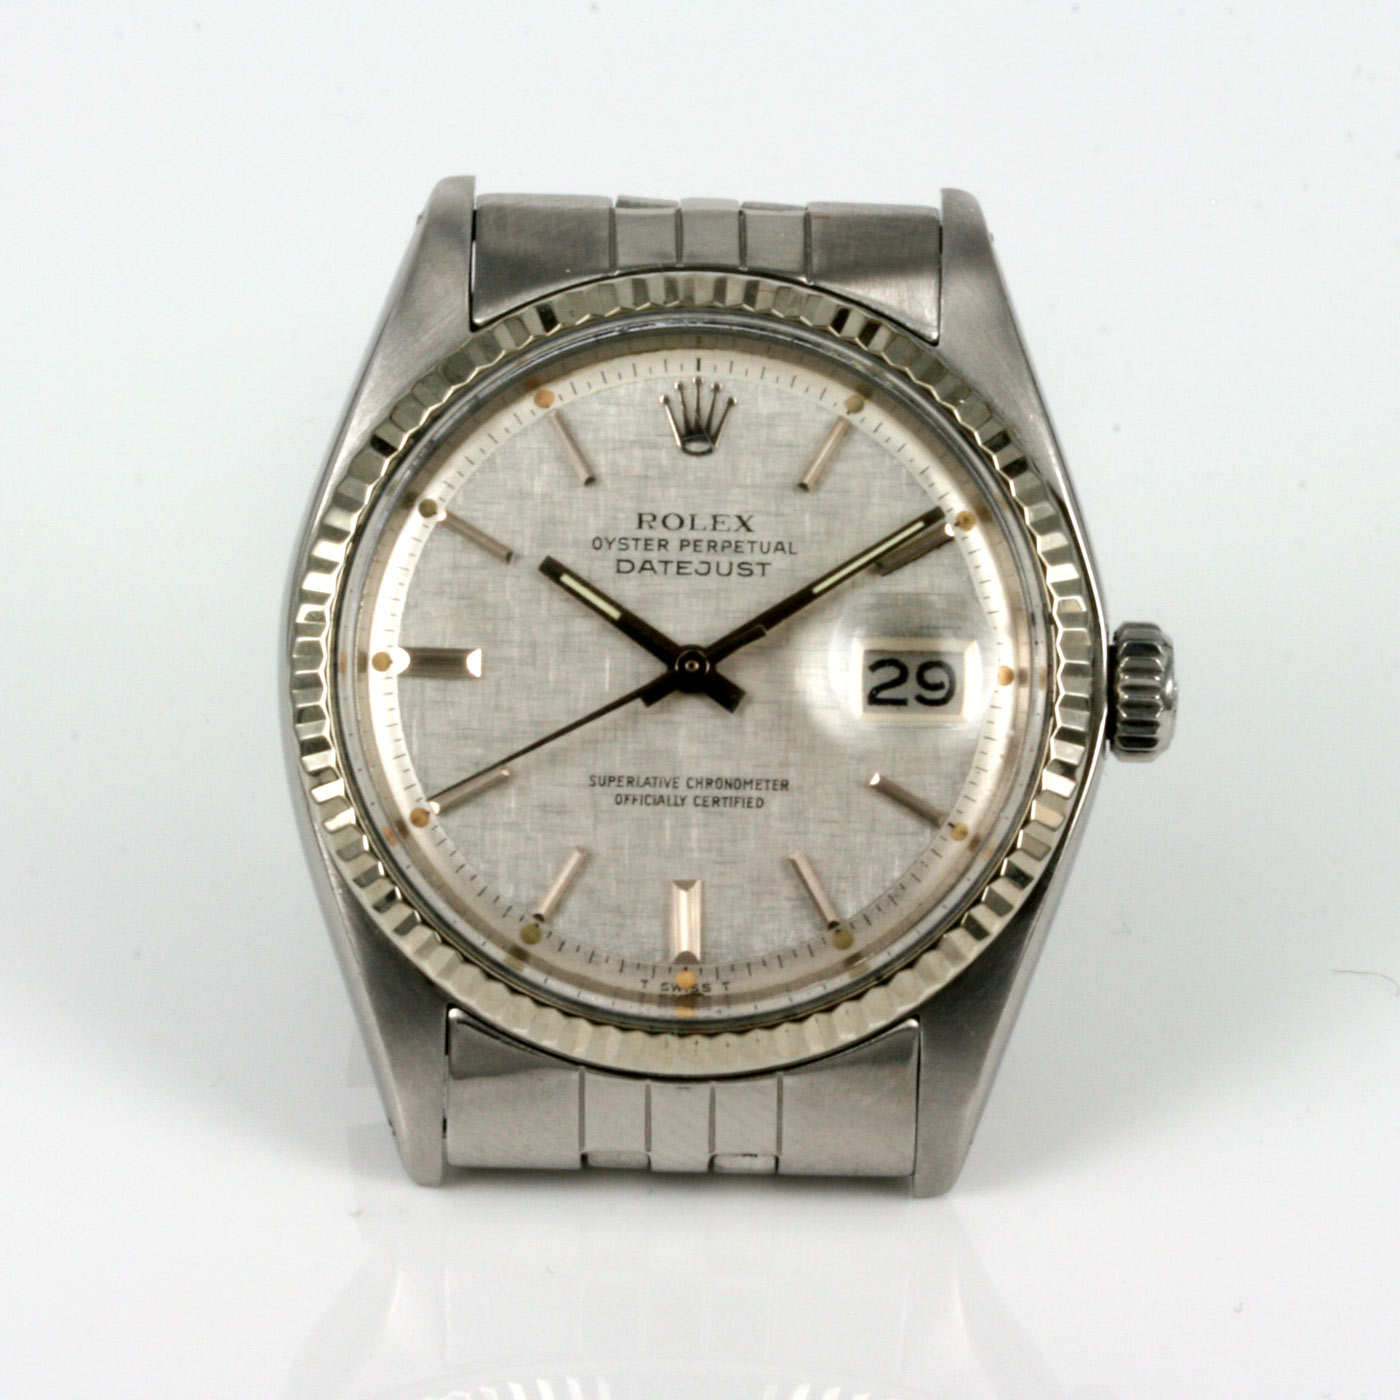 Vintage Rolex Watches Buy 1977 Vintage Rolex Watch Model 1601 Sold Items, Sold